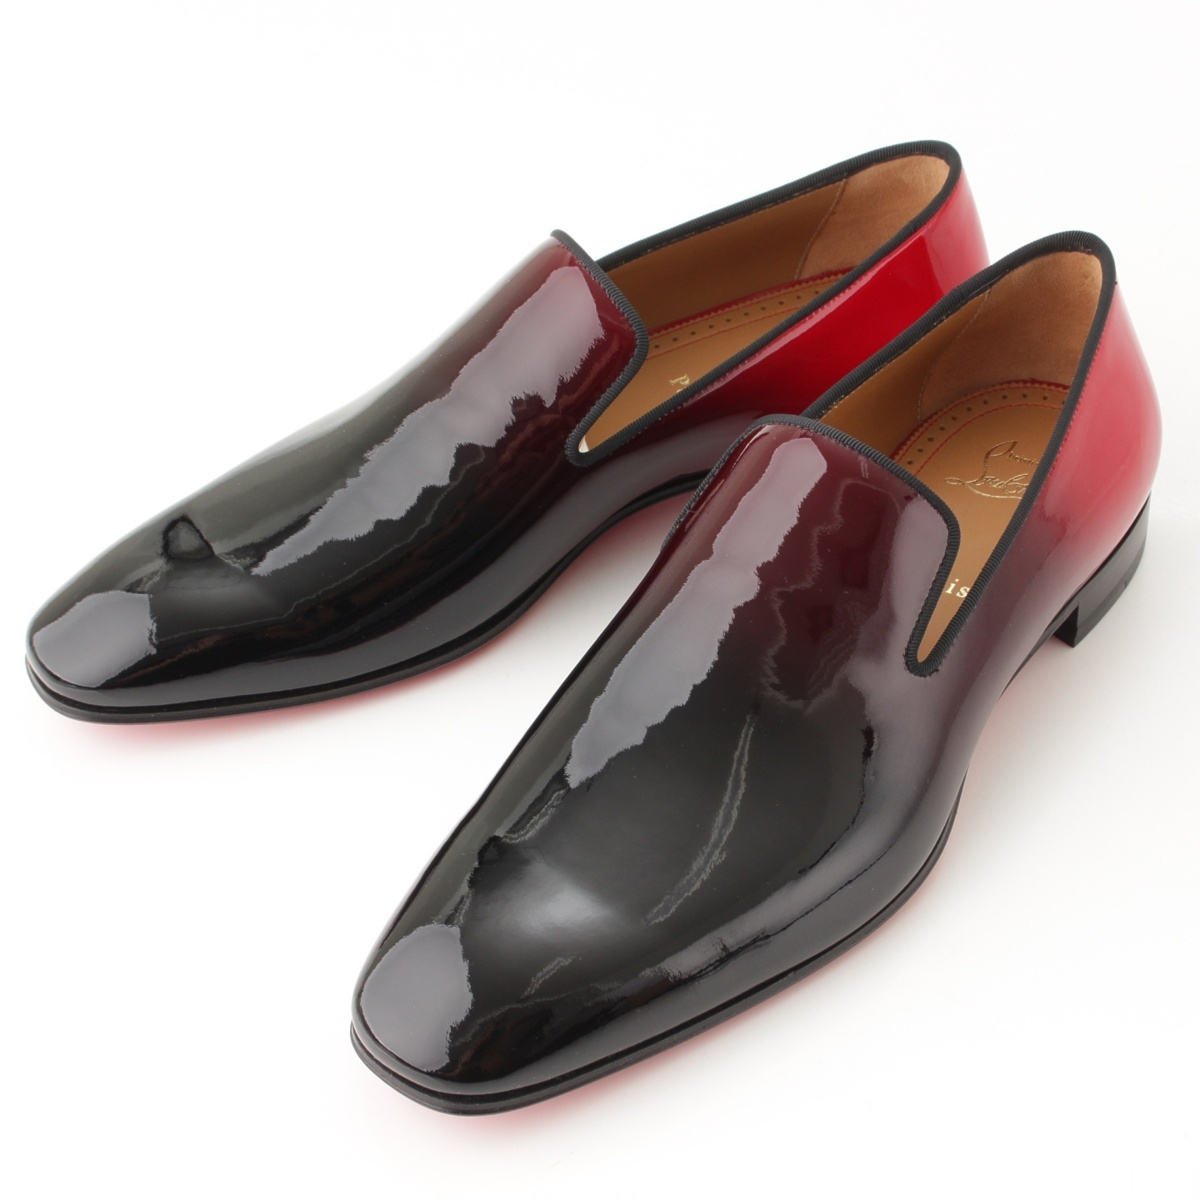 finest selection 57960 5ddd1 Christian Louboutin act product Dandelion Flat men patent flattie black X  red 42-free 61658